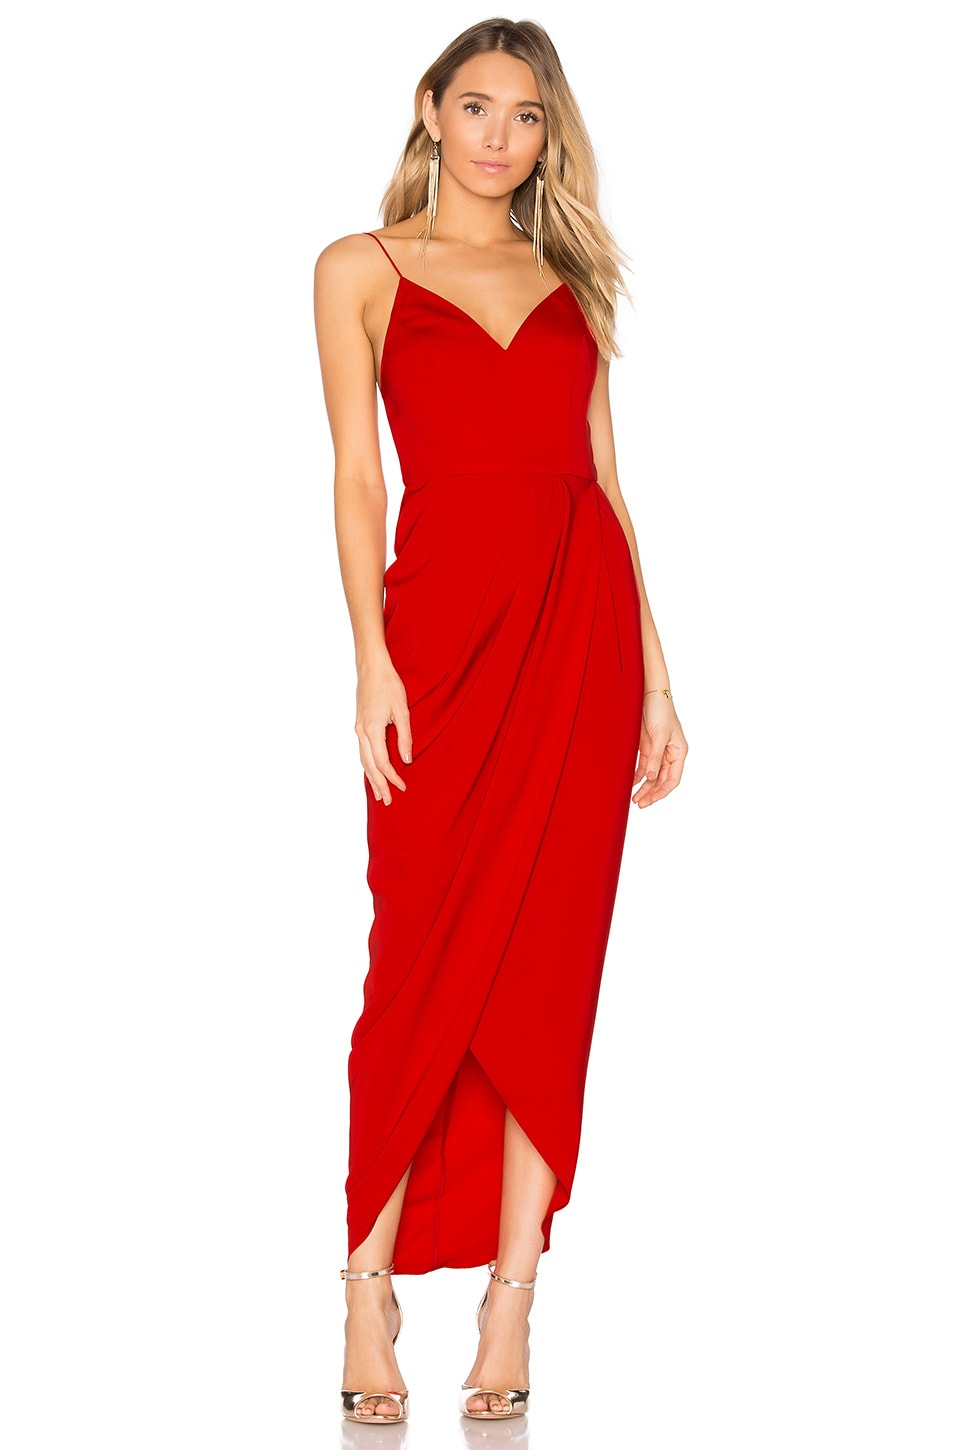 Shona Joy Cocktail Draped Dress in Tomato